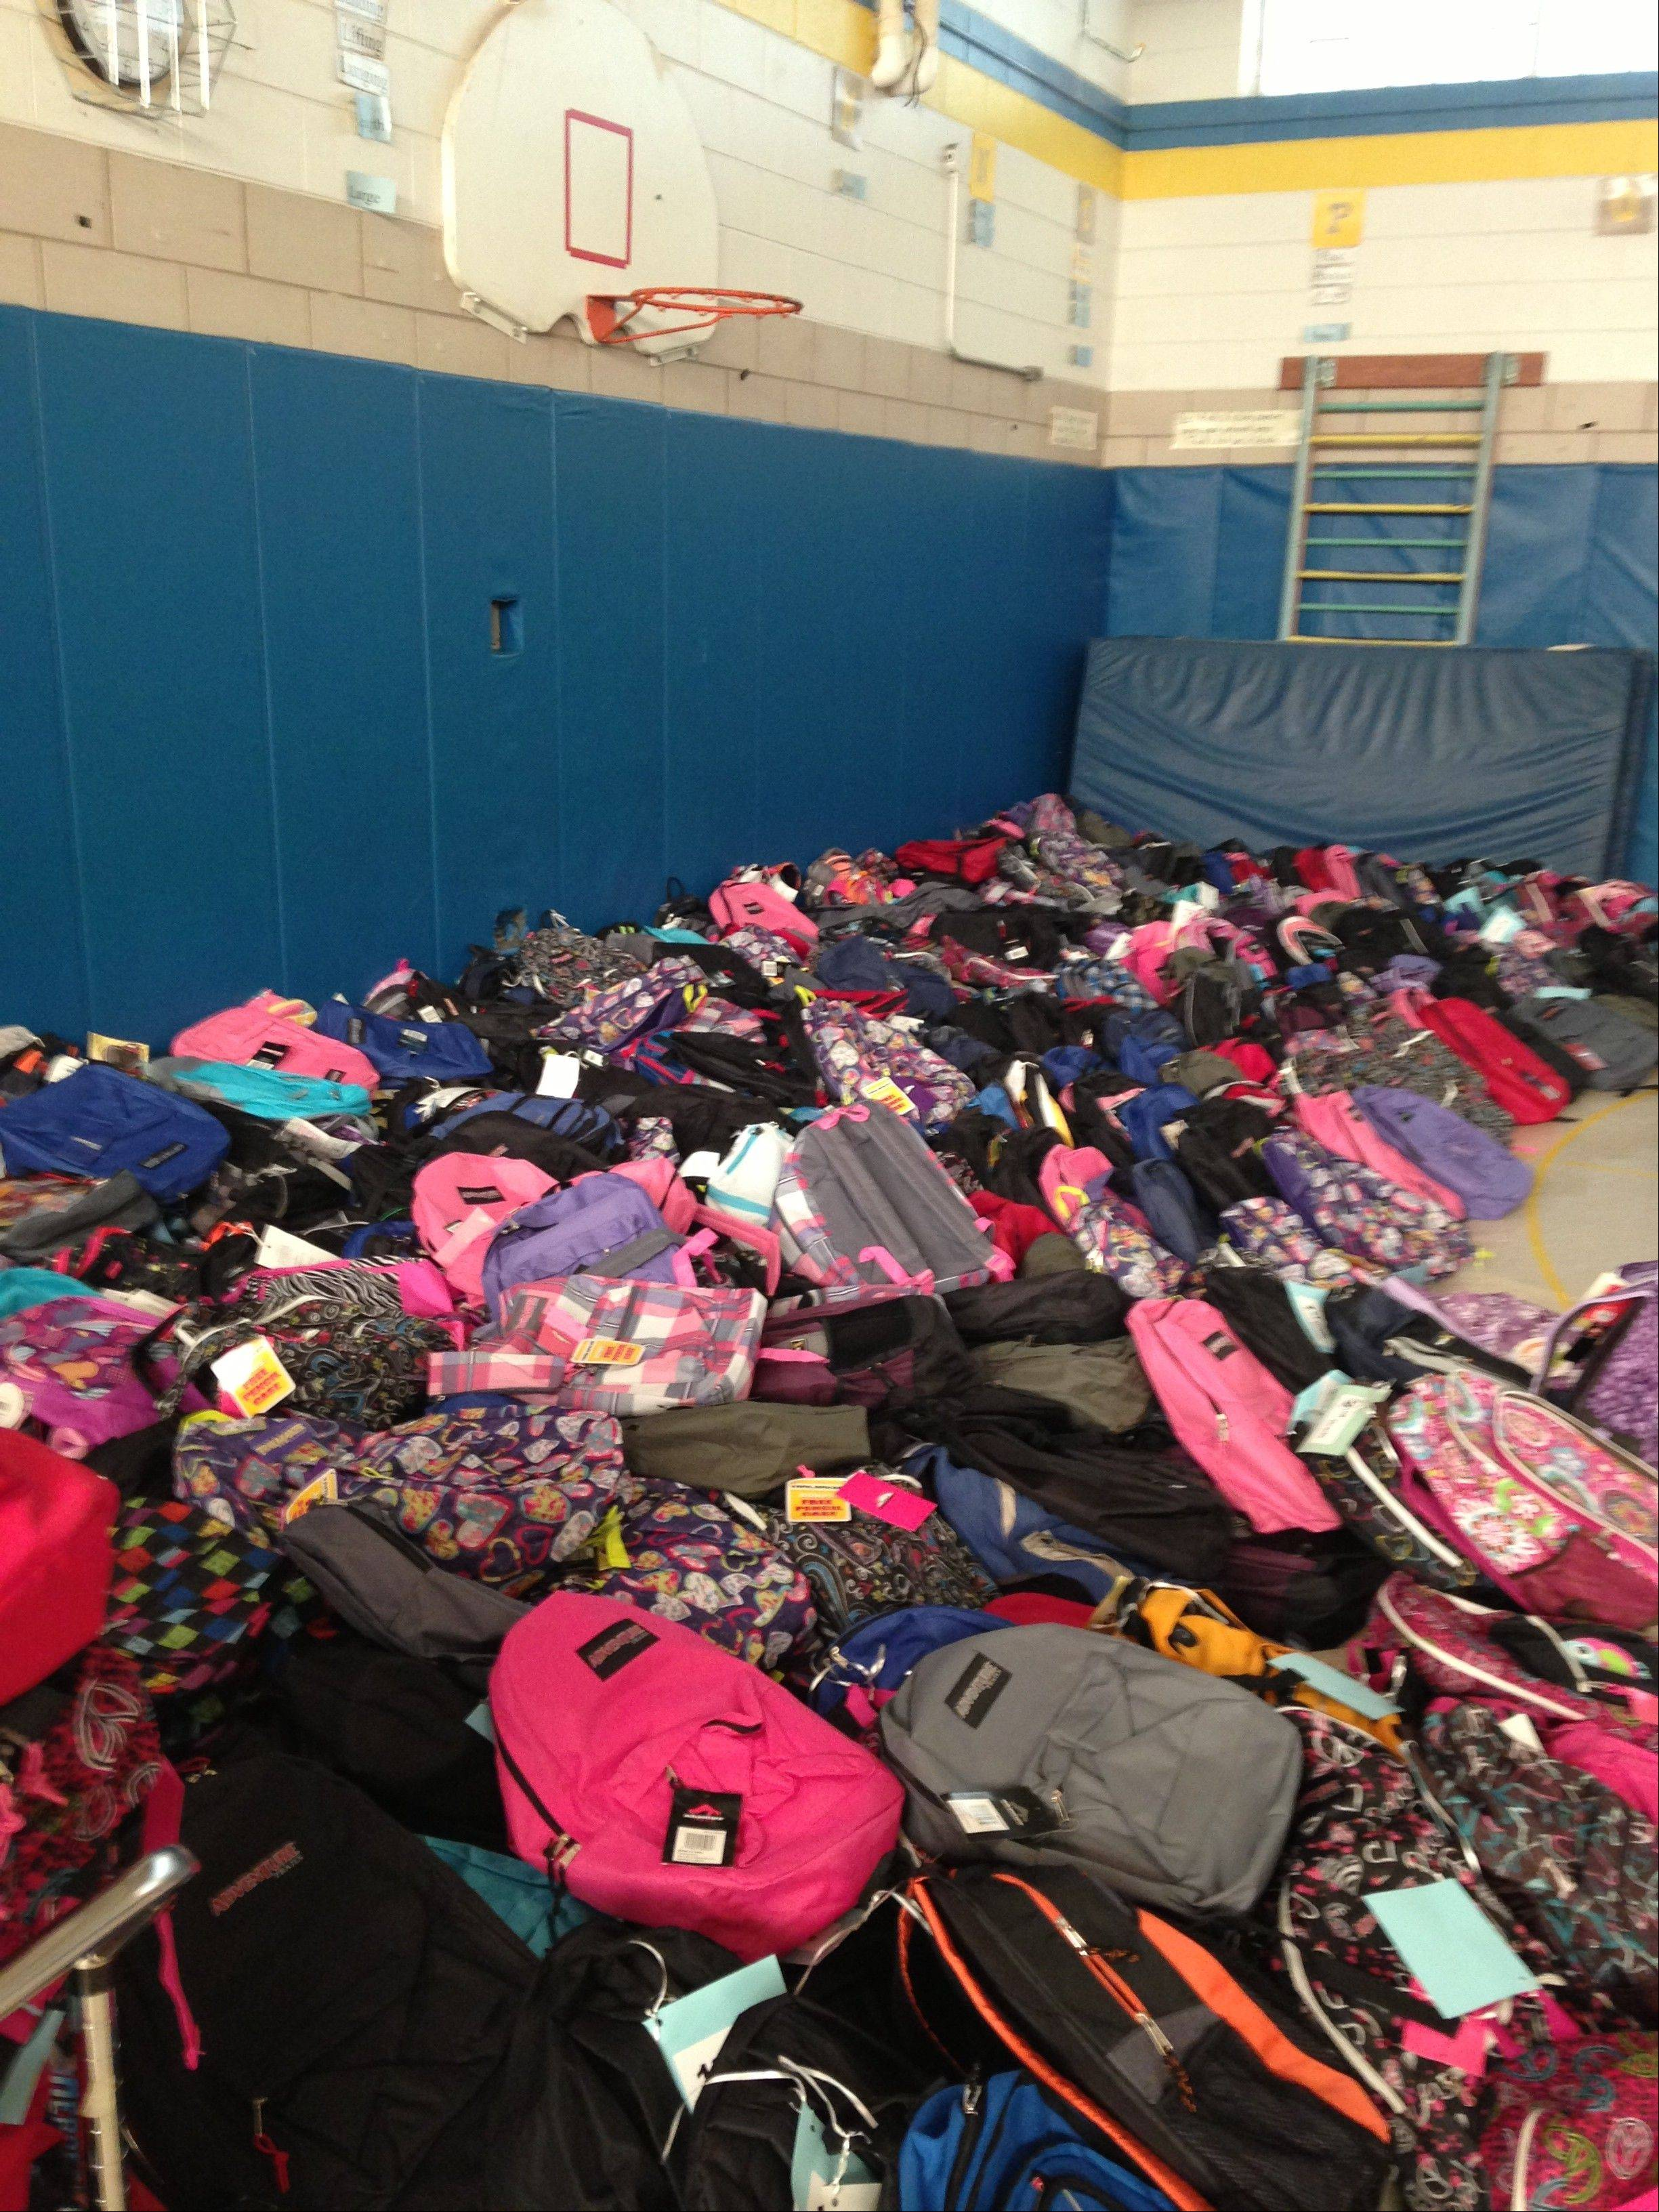 Hanover Township distributed more than 1,000 backpacks to needy families last week as part of its effort to help kids get off to a good start in the new school year.